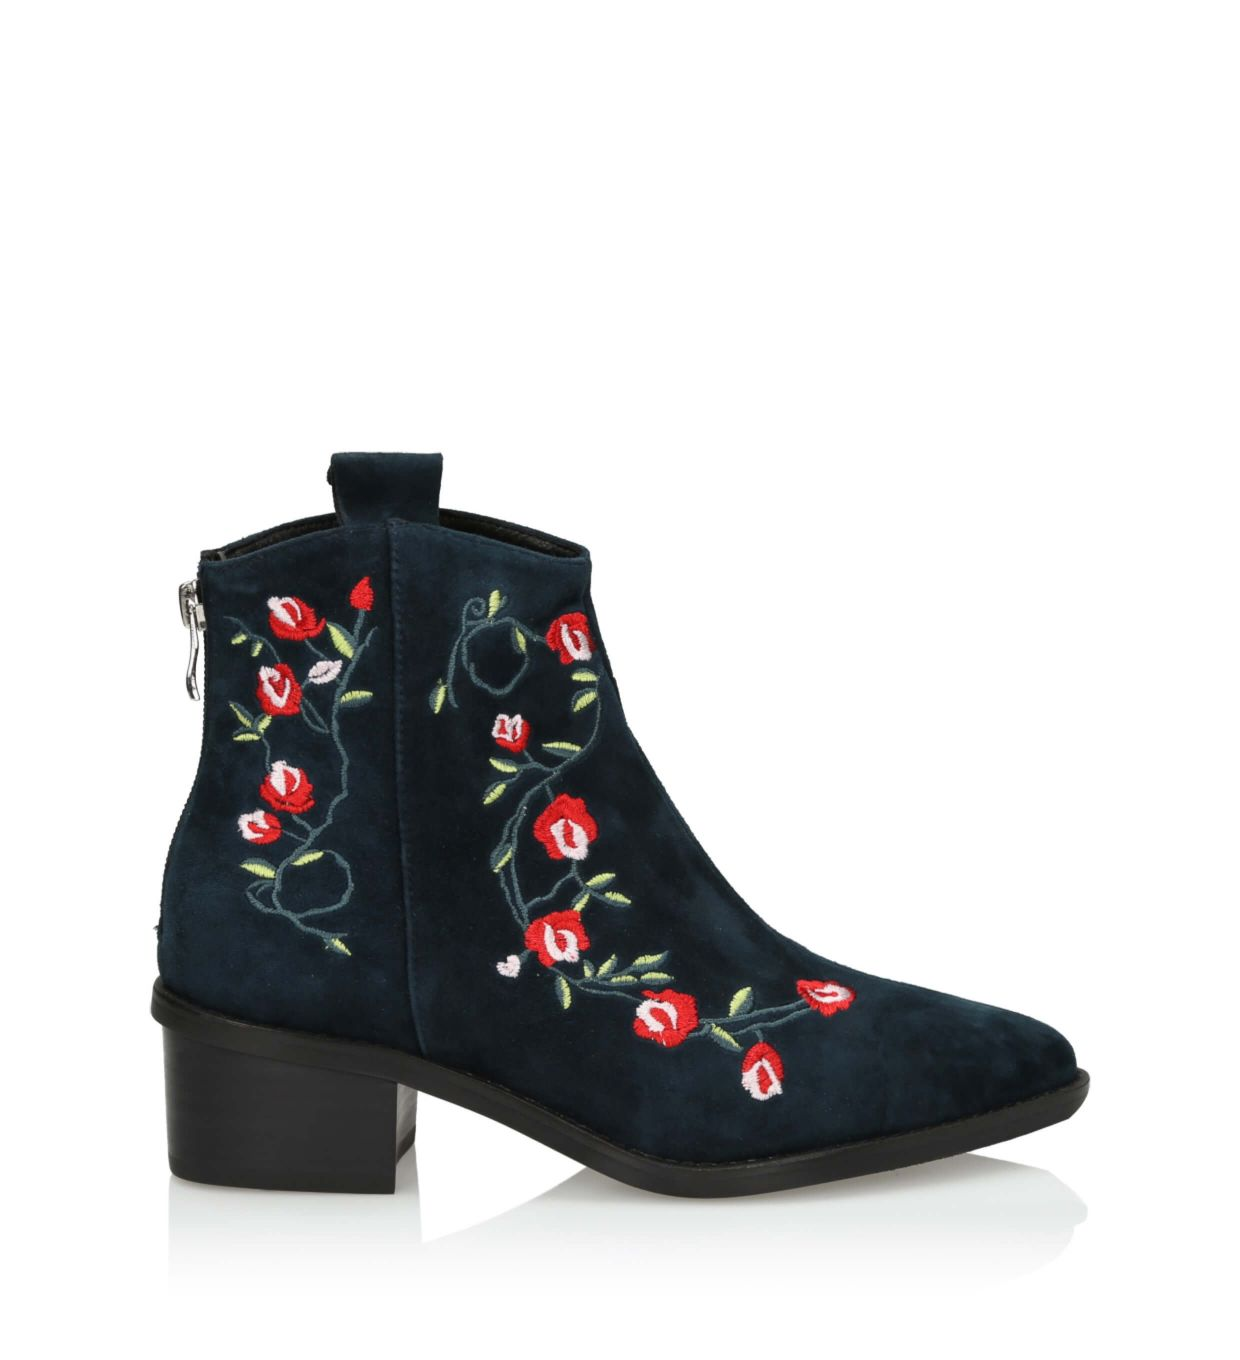 free shipping high fashion 2019 factory price 3i Navy blue ankle boots - 10662 Blue Suede - shop online 3i ...